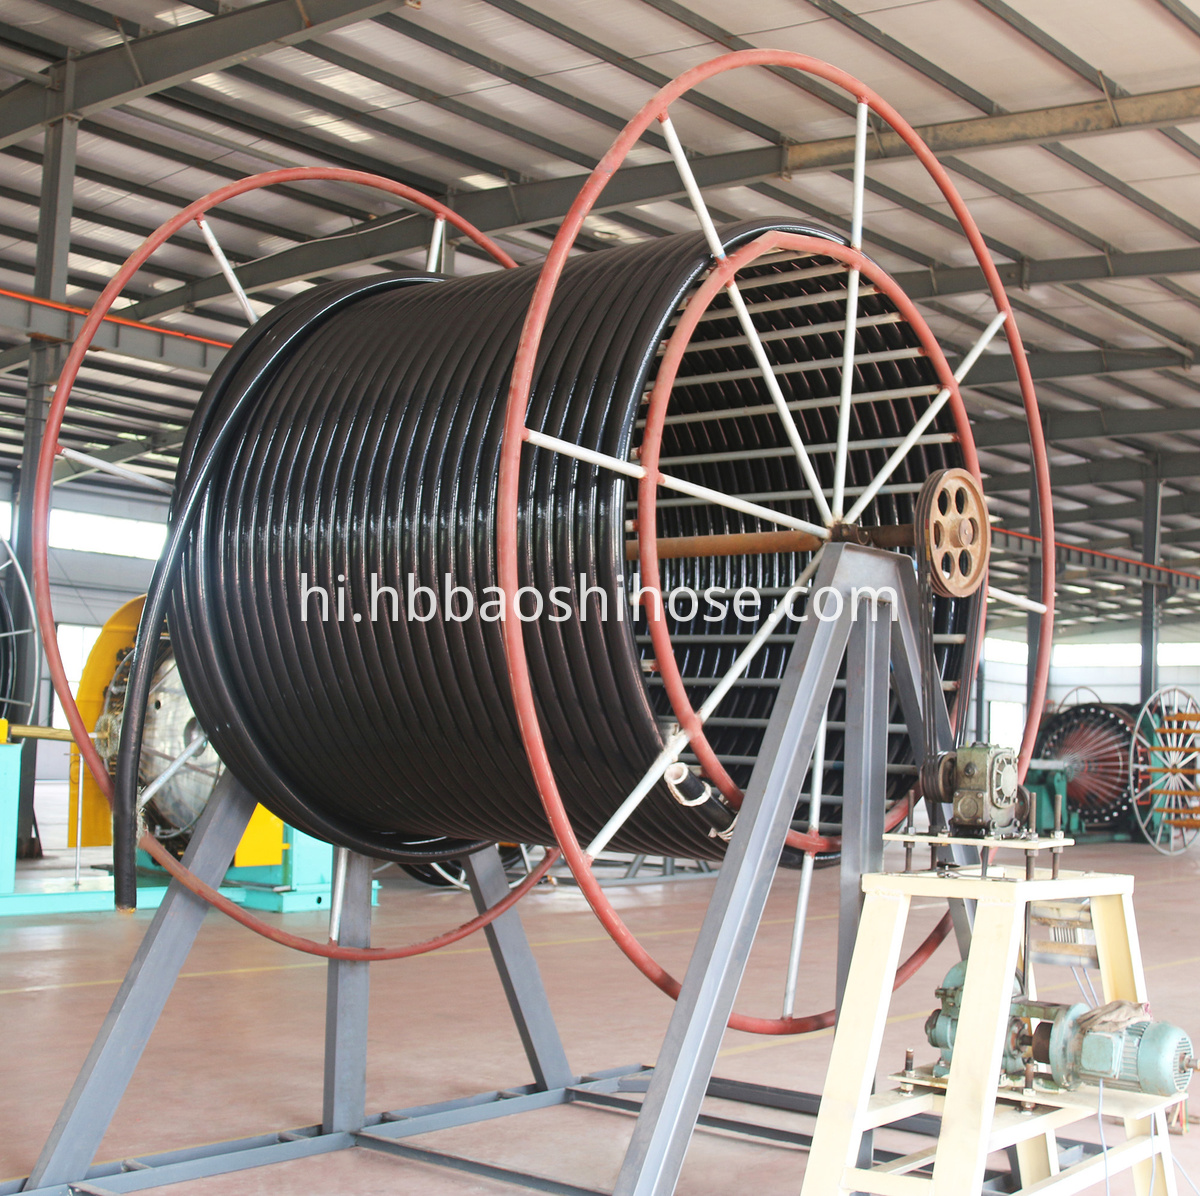 Offshore Transmission Flexible Hose